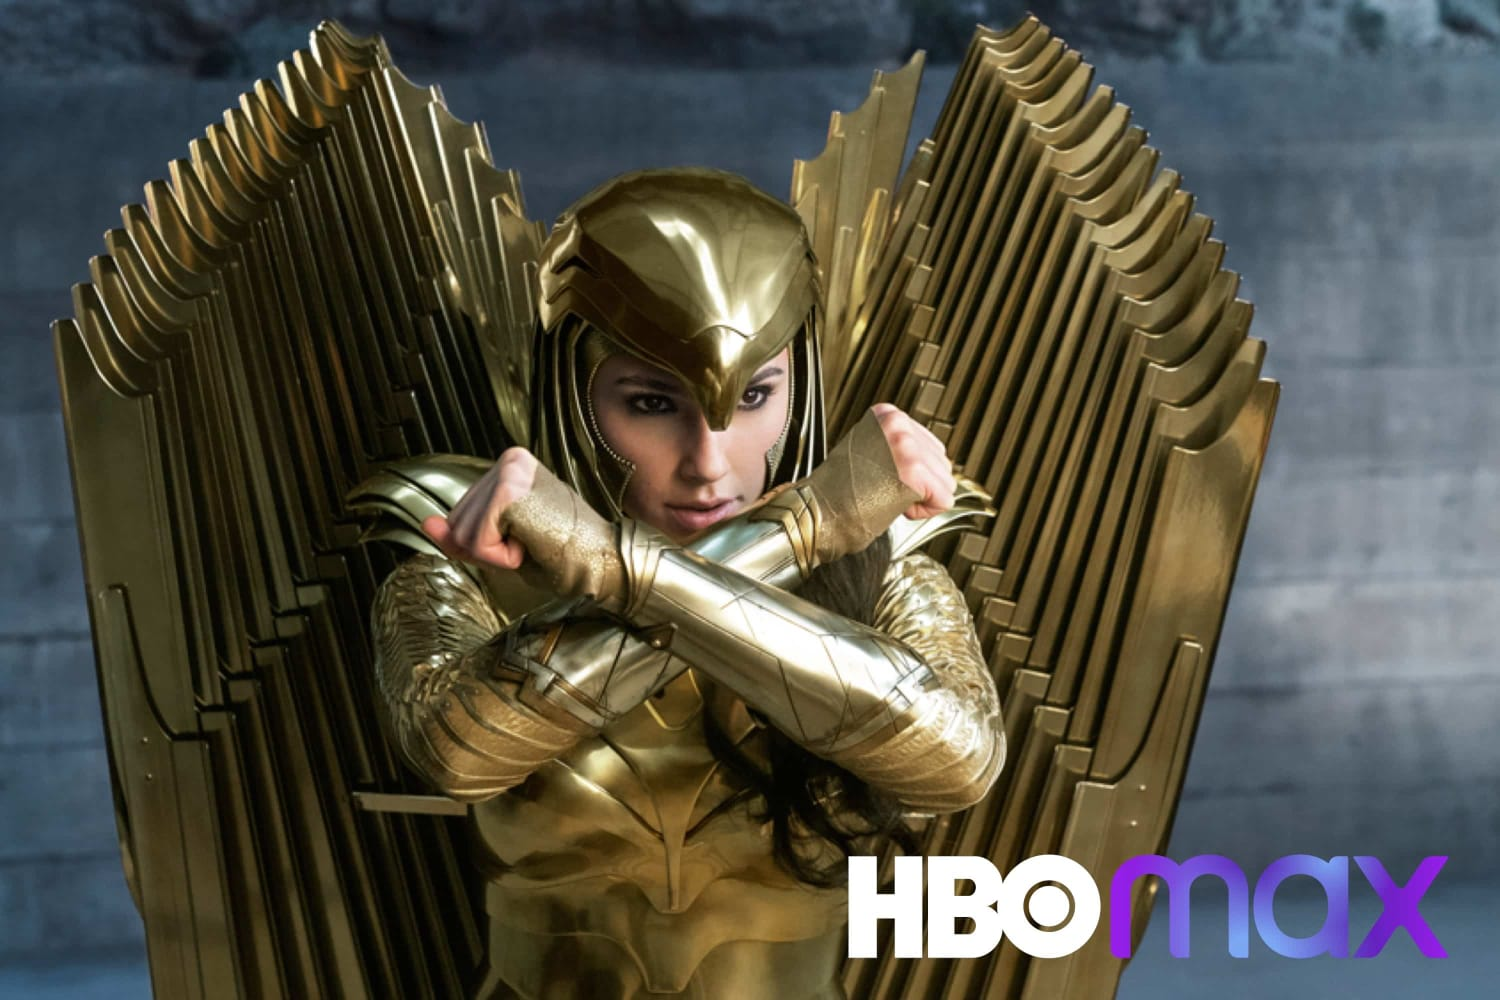 warner-bros-2021-slate-coming-to-theatres-and-hbo-max-20201204-1